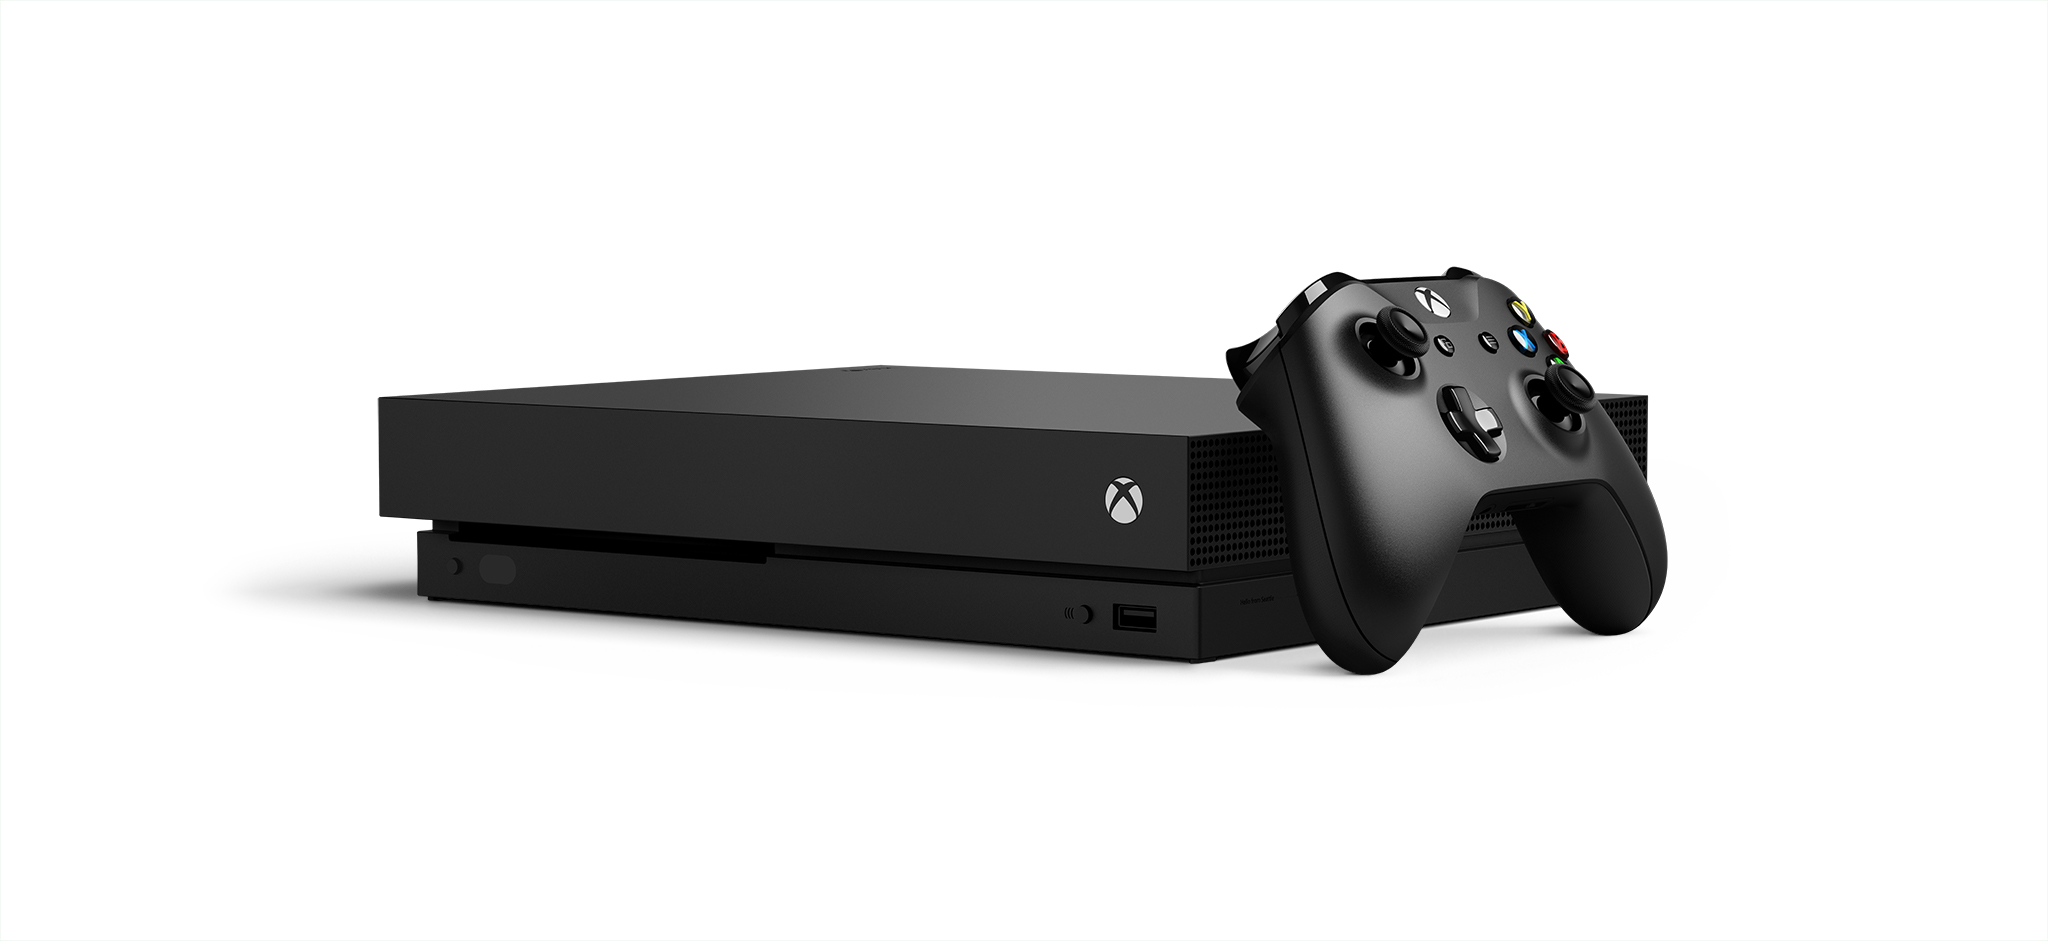 Microsoft No Longer Manufacturing The Xbox One X & Disc-Less Xbox One S